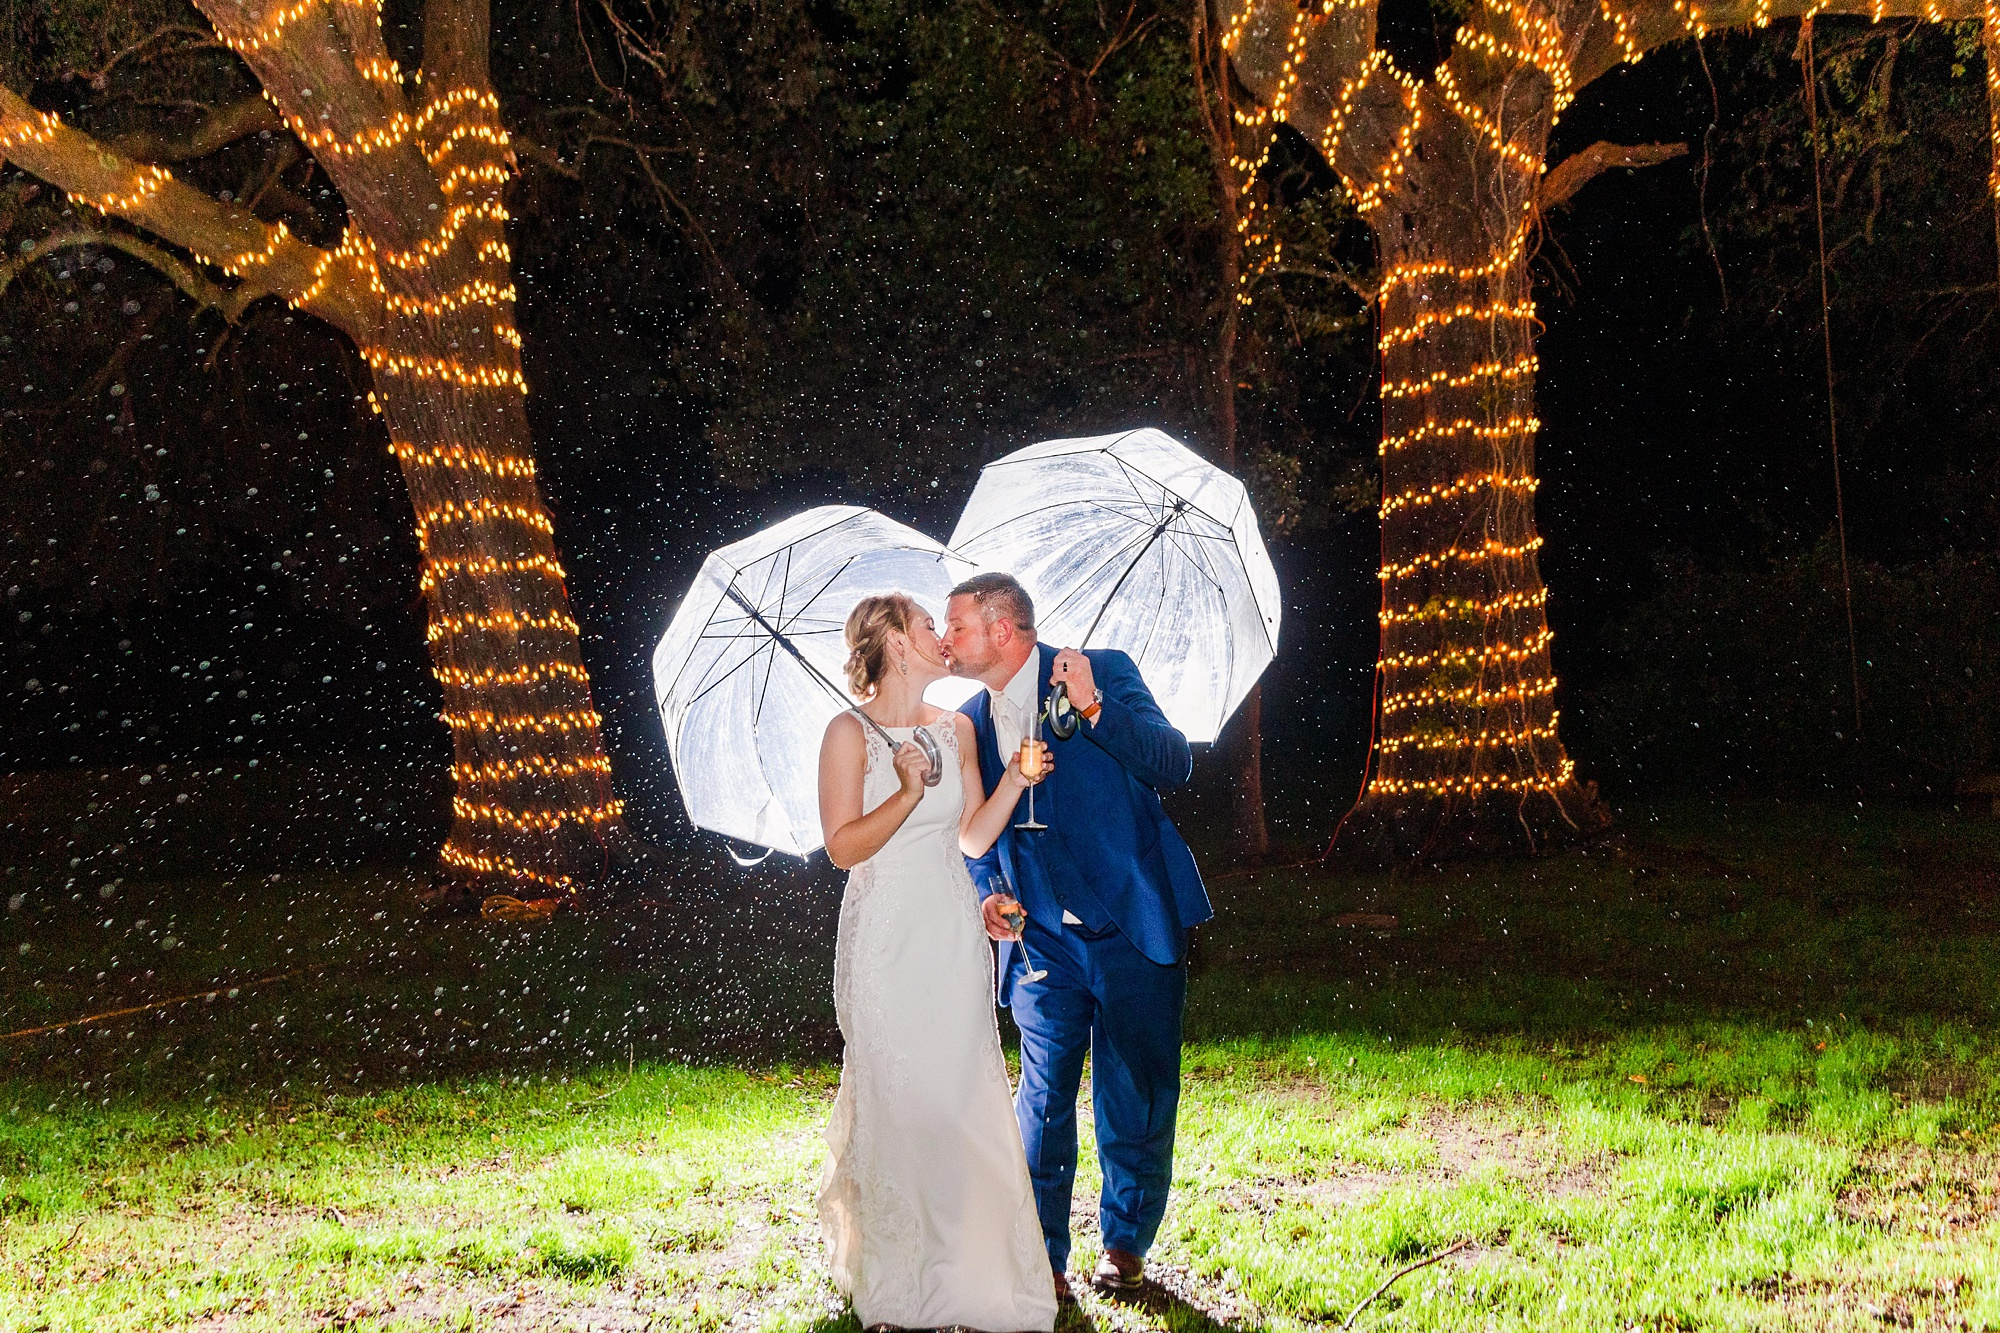 bride and groom kiss under umbrellas during rain storm